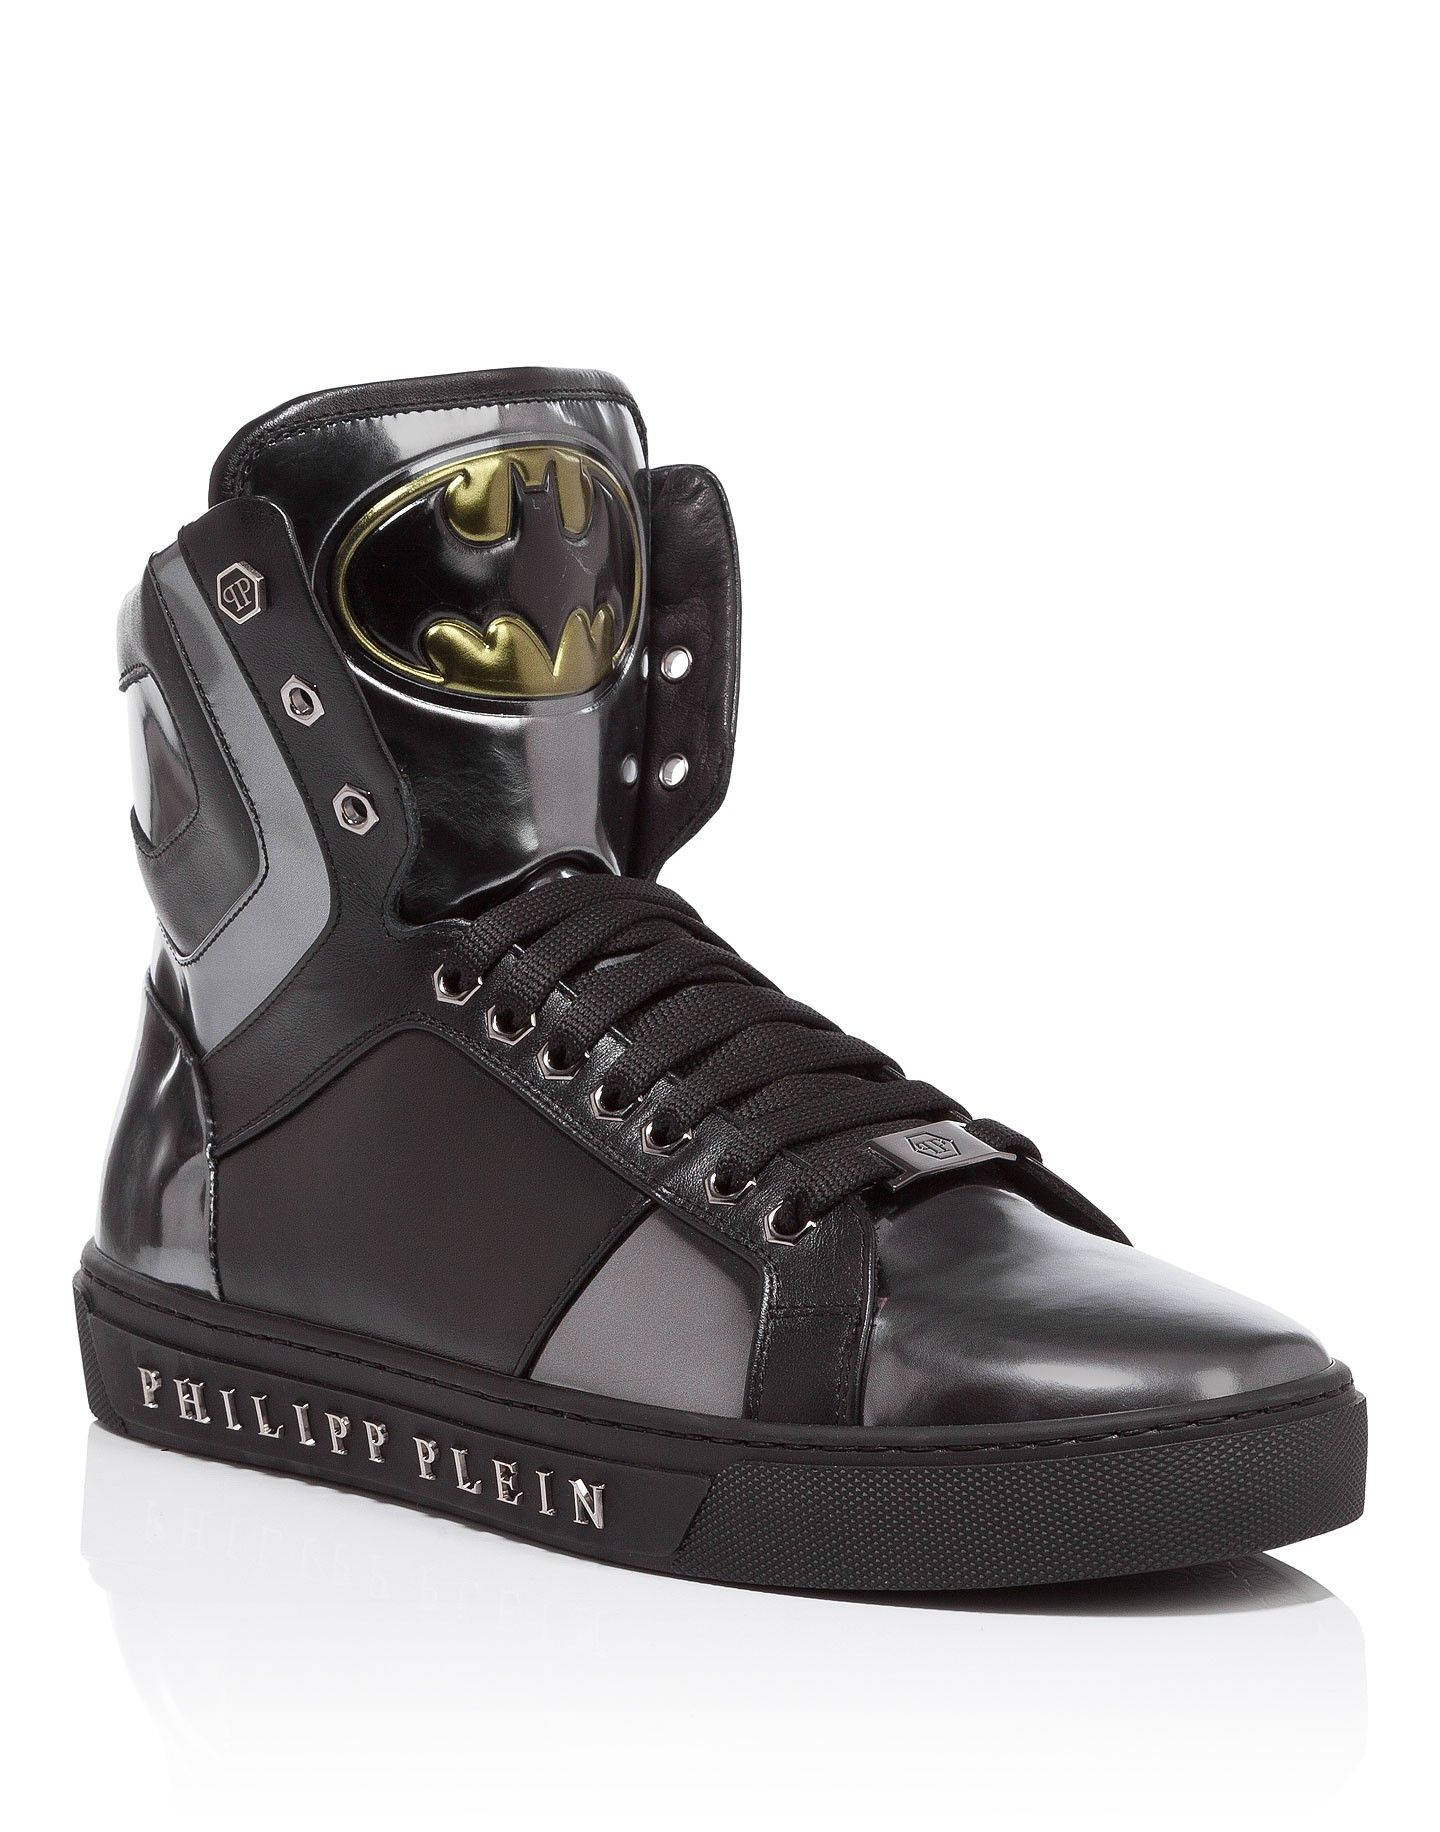 PHILIPP PLEIN HIGH SNEAKERS